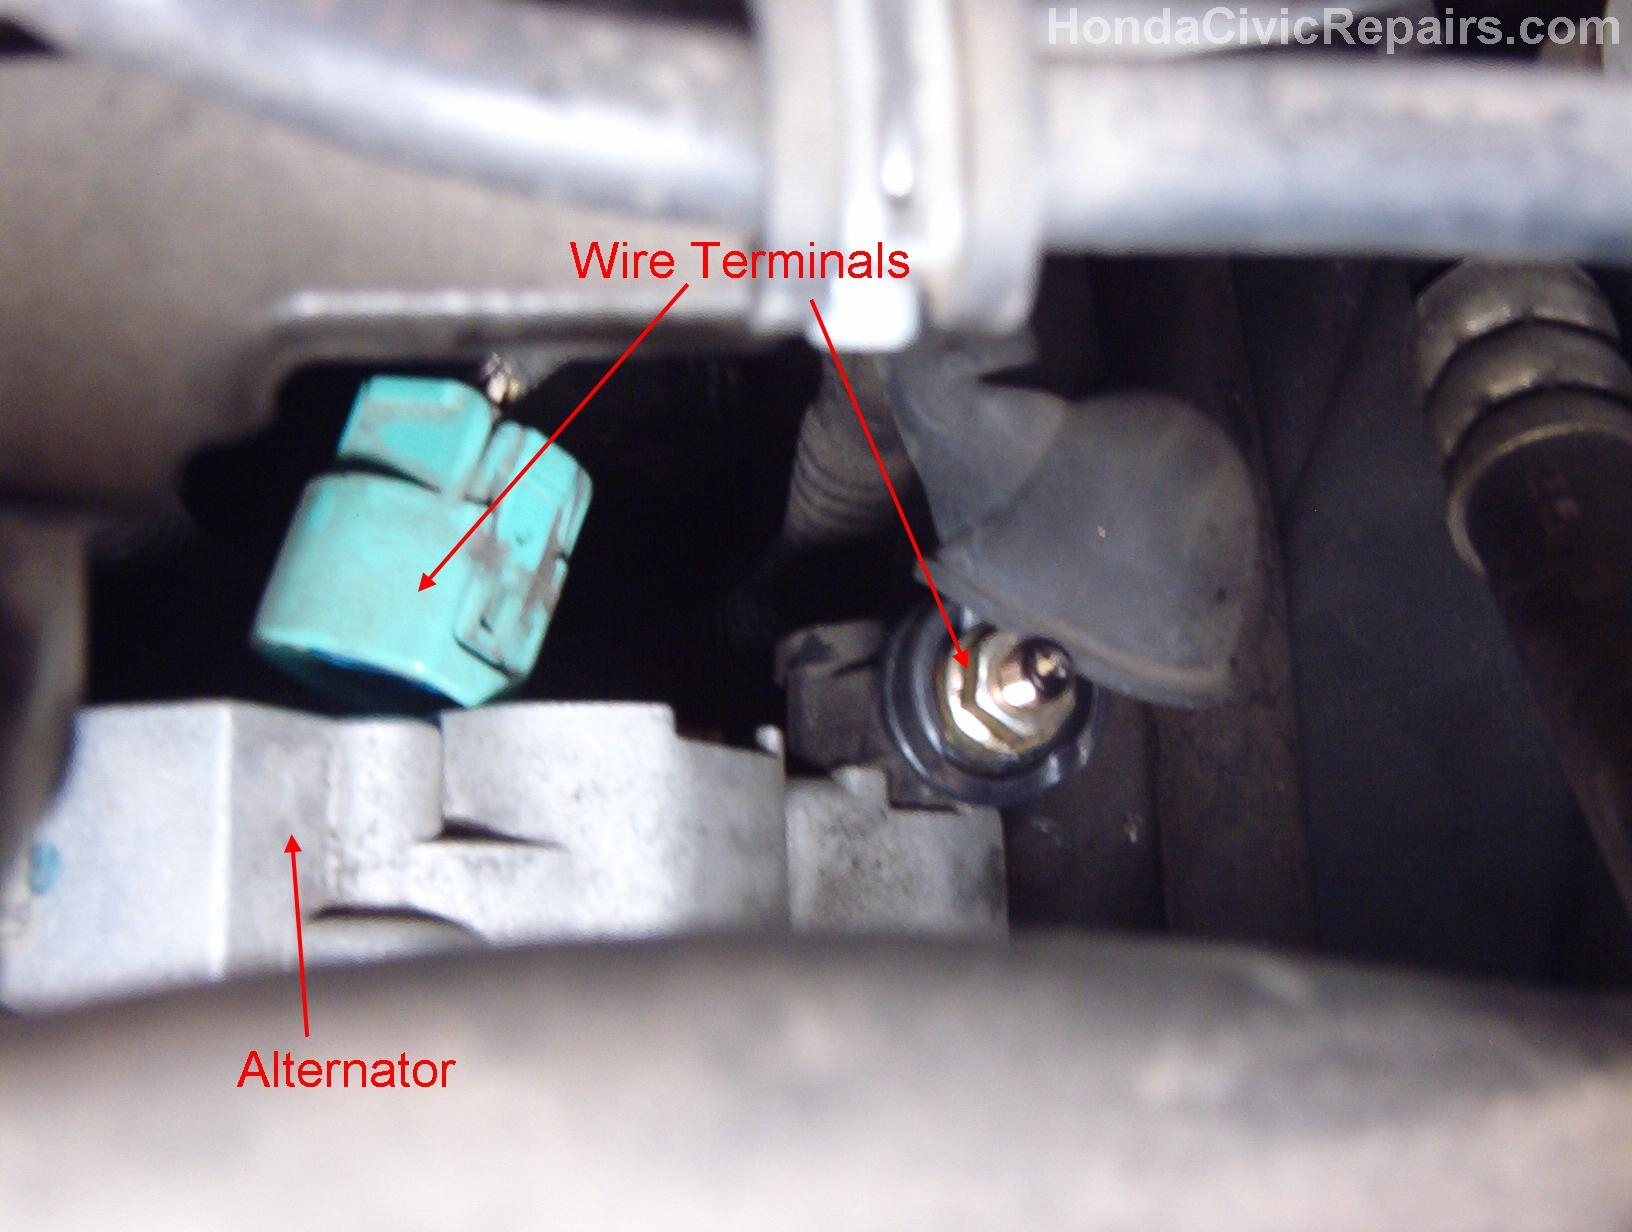 Alternator wire connections from top view (Honda Civic EX 1998)